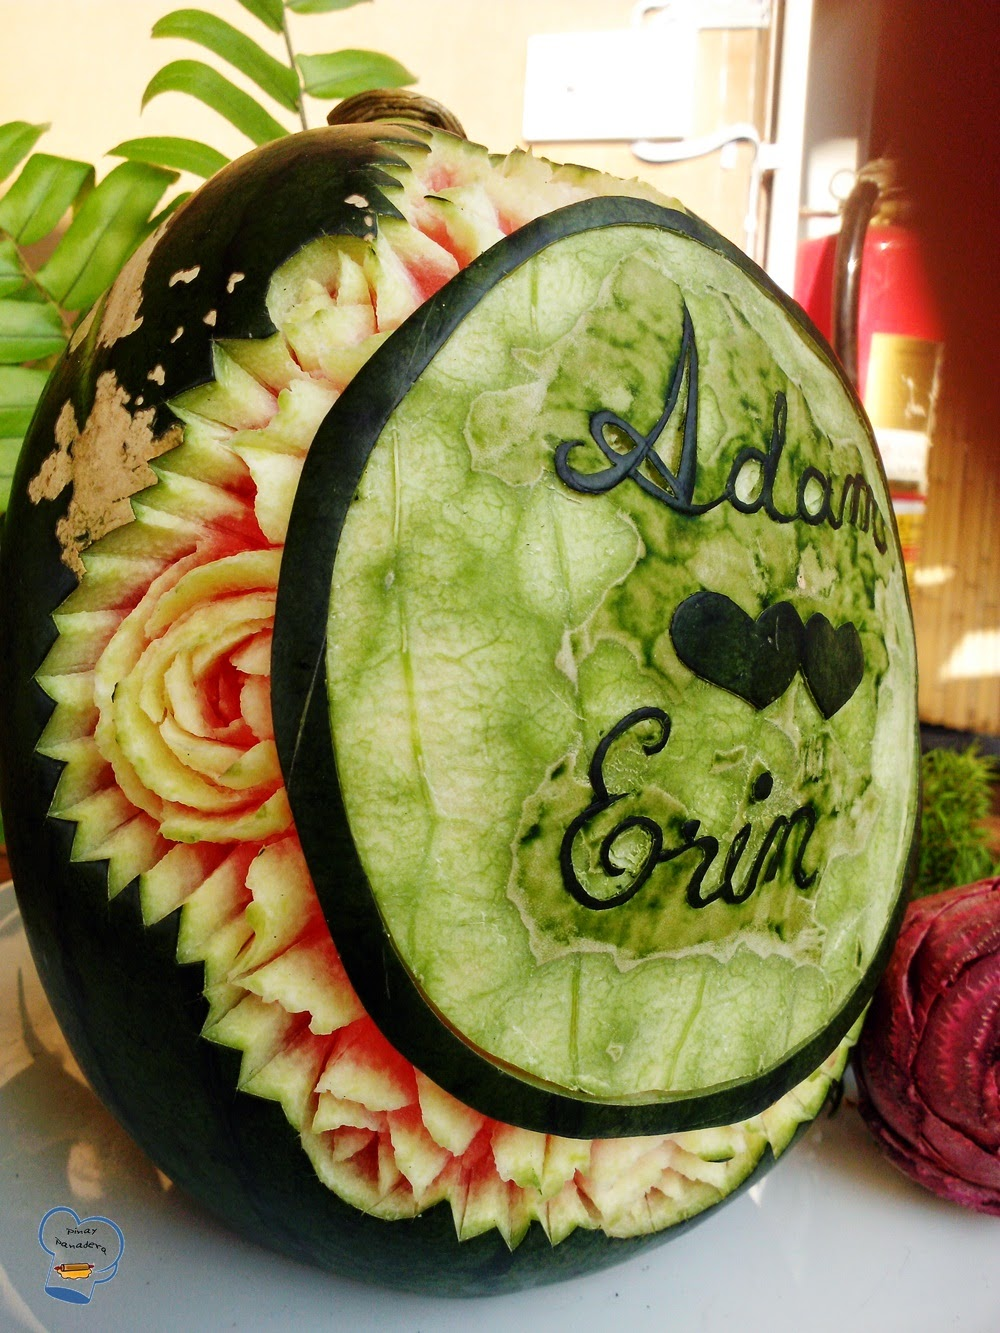 Pinay panadera s culinary adventures wedding fruit carving